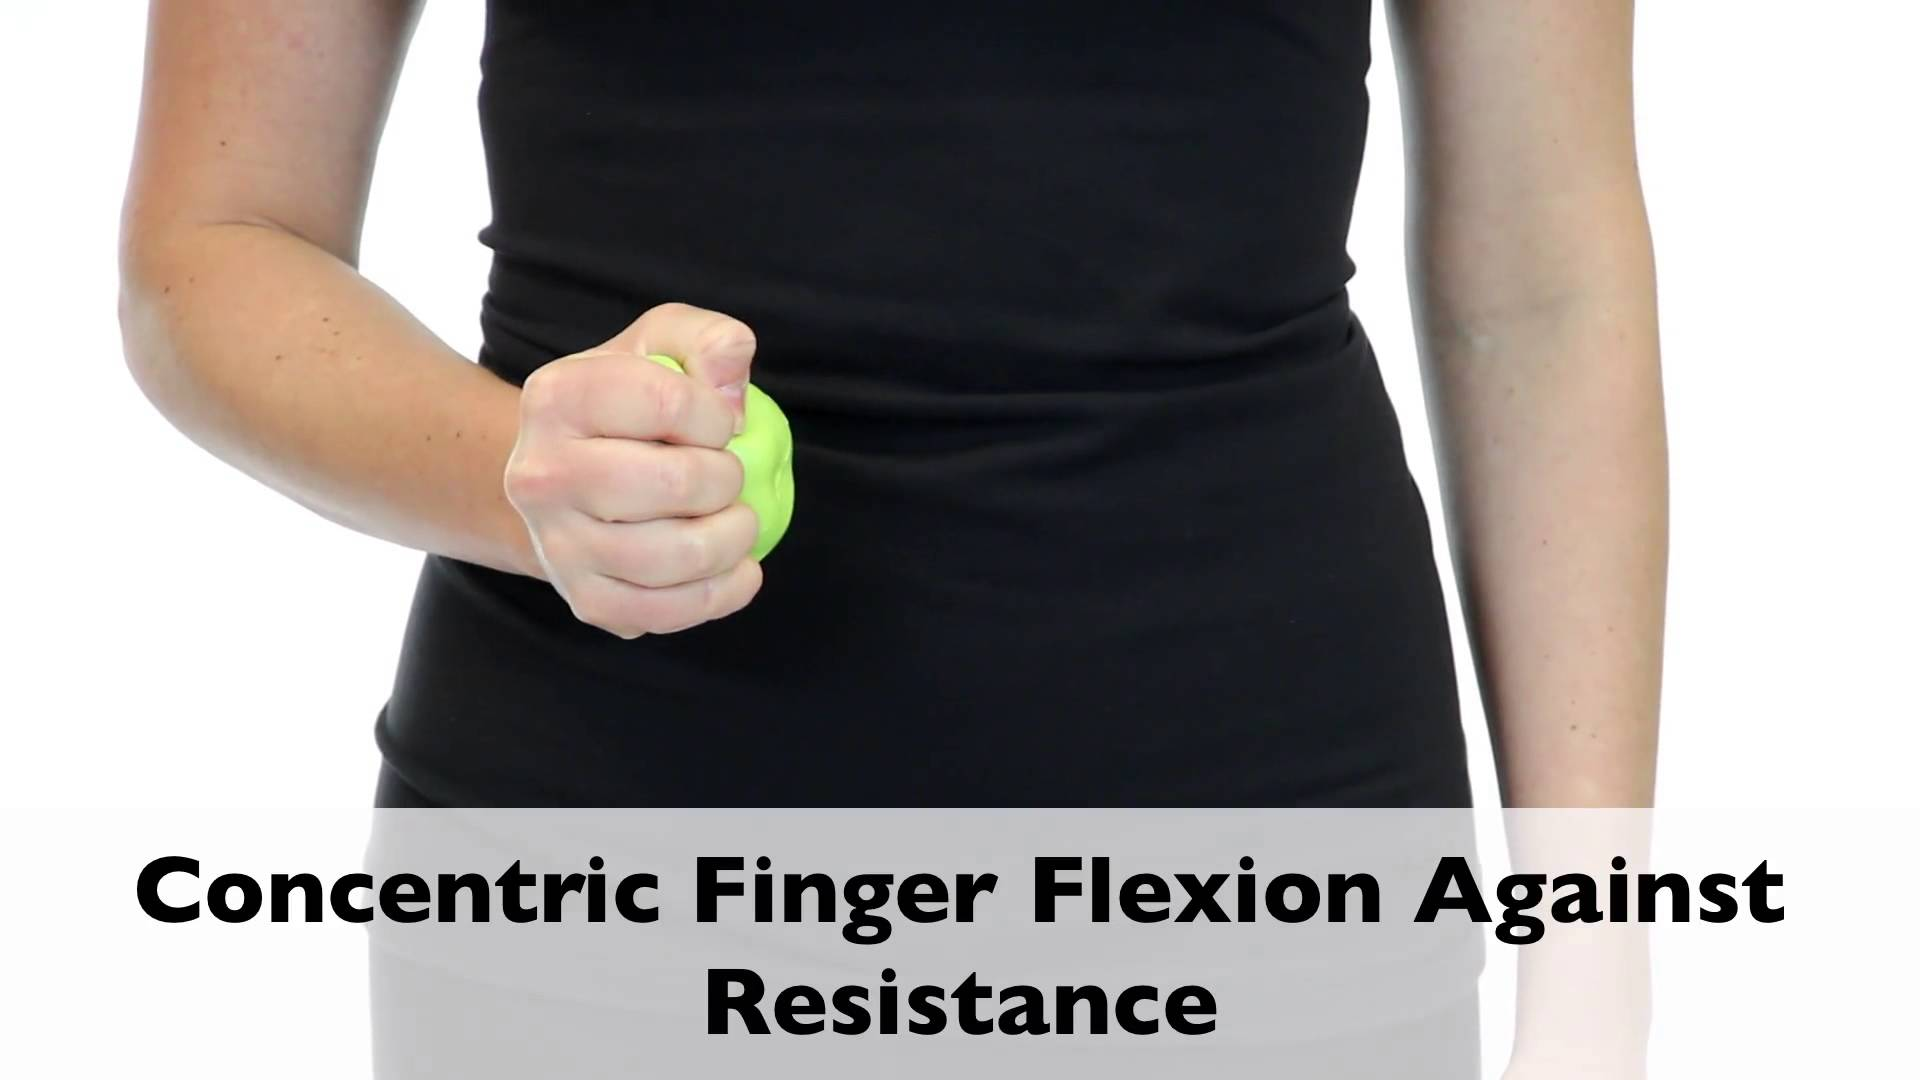 Concentric Finger Flexion Against Resistance